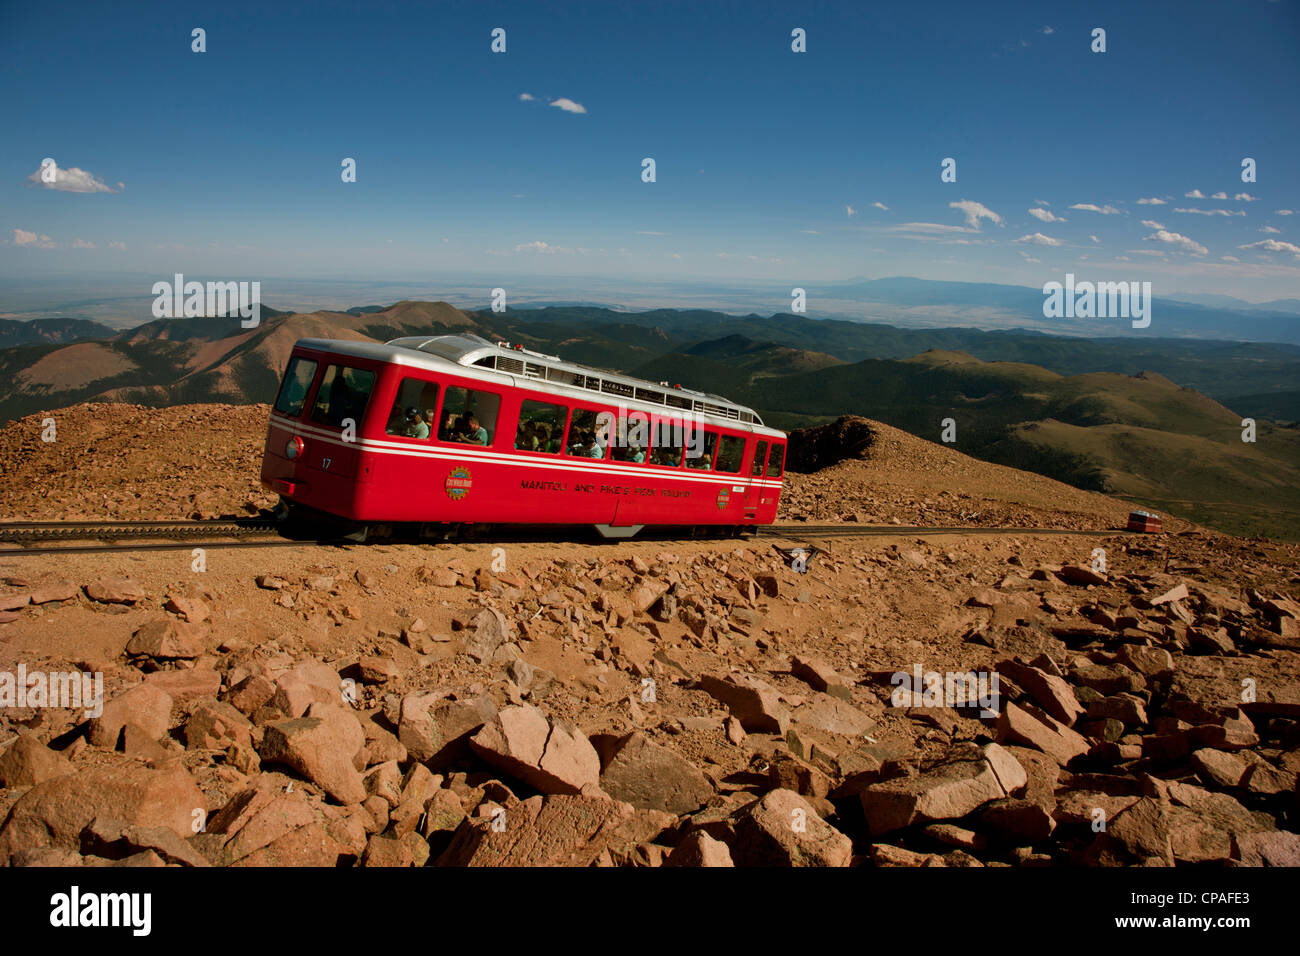 USA, Colorado, Pikes Peak. Red cars of the Manitou and Pikes Peak Cog Railway carrying tourists to the top of Pikes - Stock Image